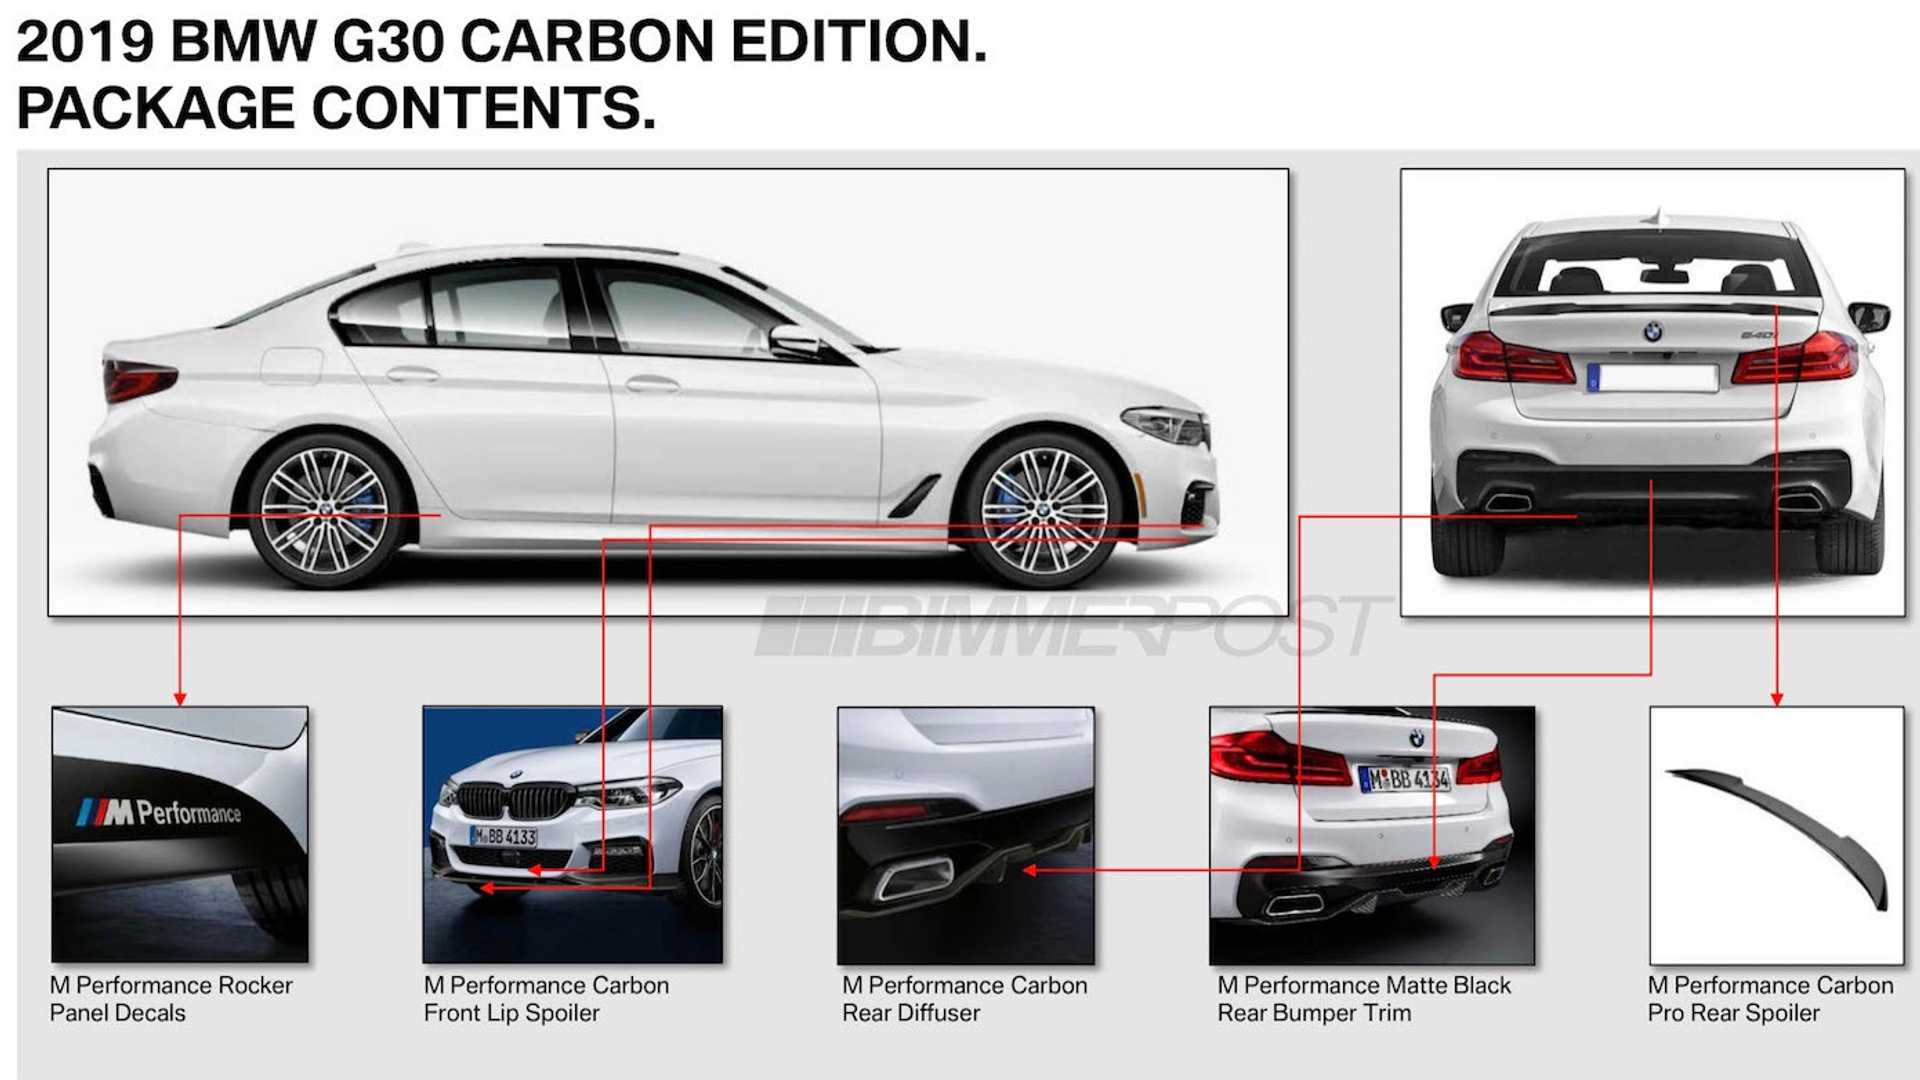 Bmw 5 Series Carbon Edition Coming With M Performance Goodies